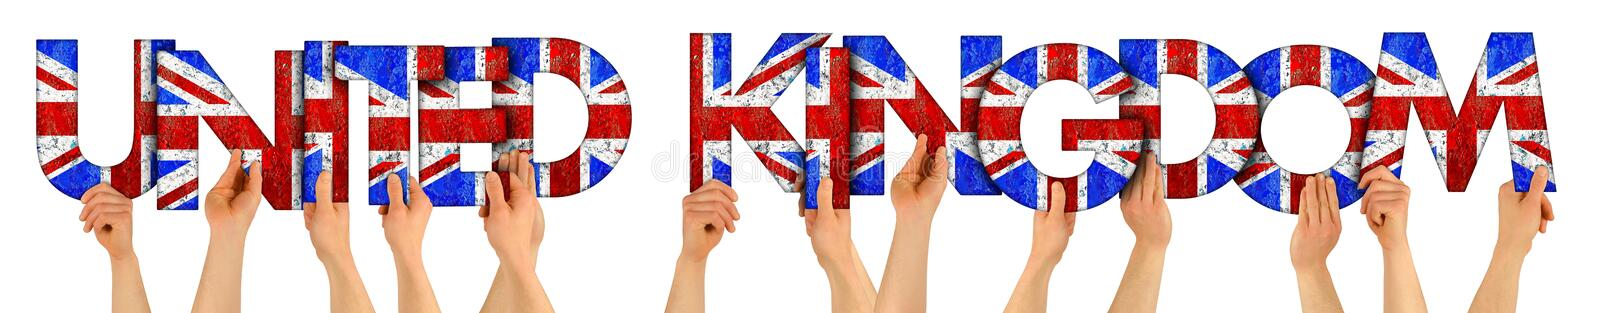 People arms hands holding up wooden letter lettering forming words united kingdom in union jack uk national flag colors tourism. People arms hands holding up stock photos